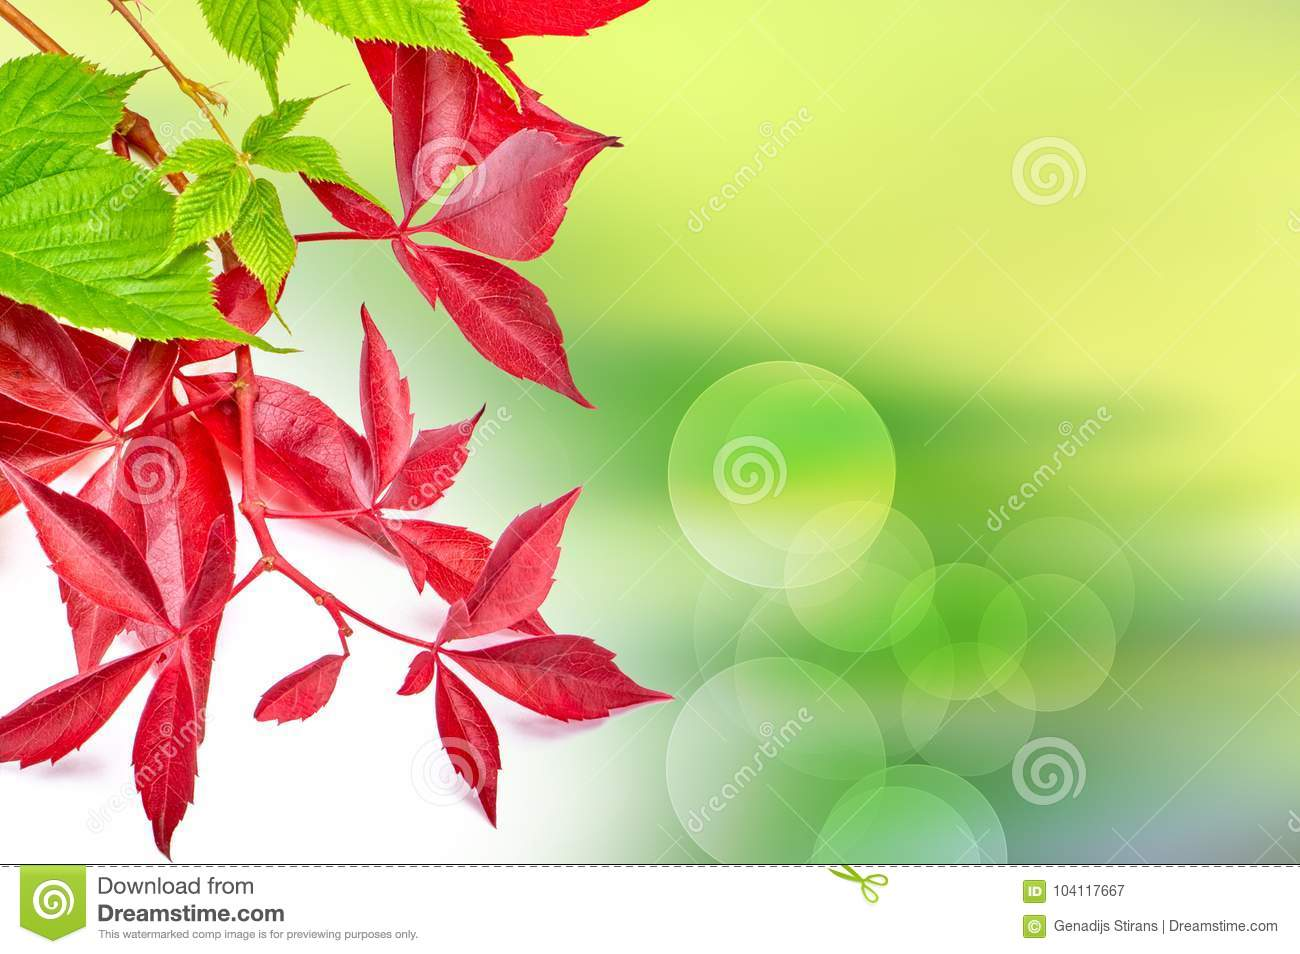 Sunny abstract green nature background with grapes leaves.